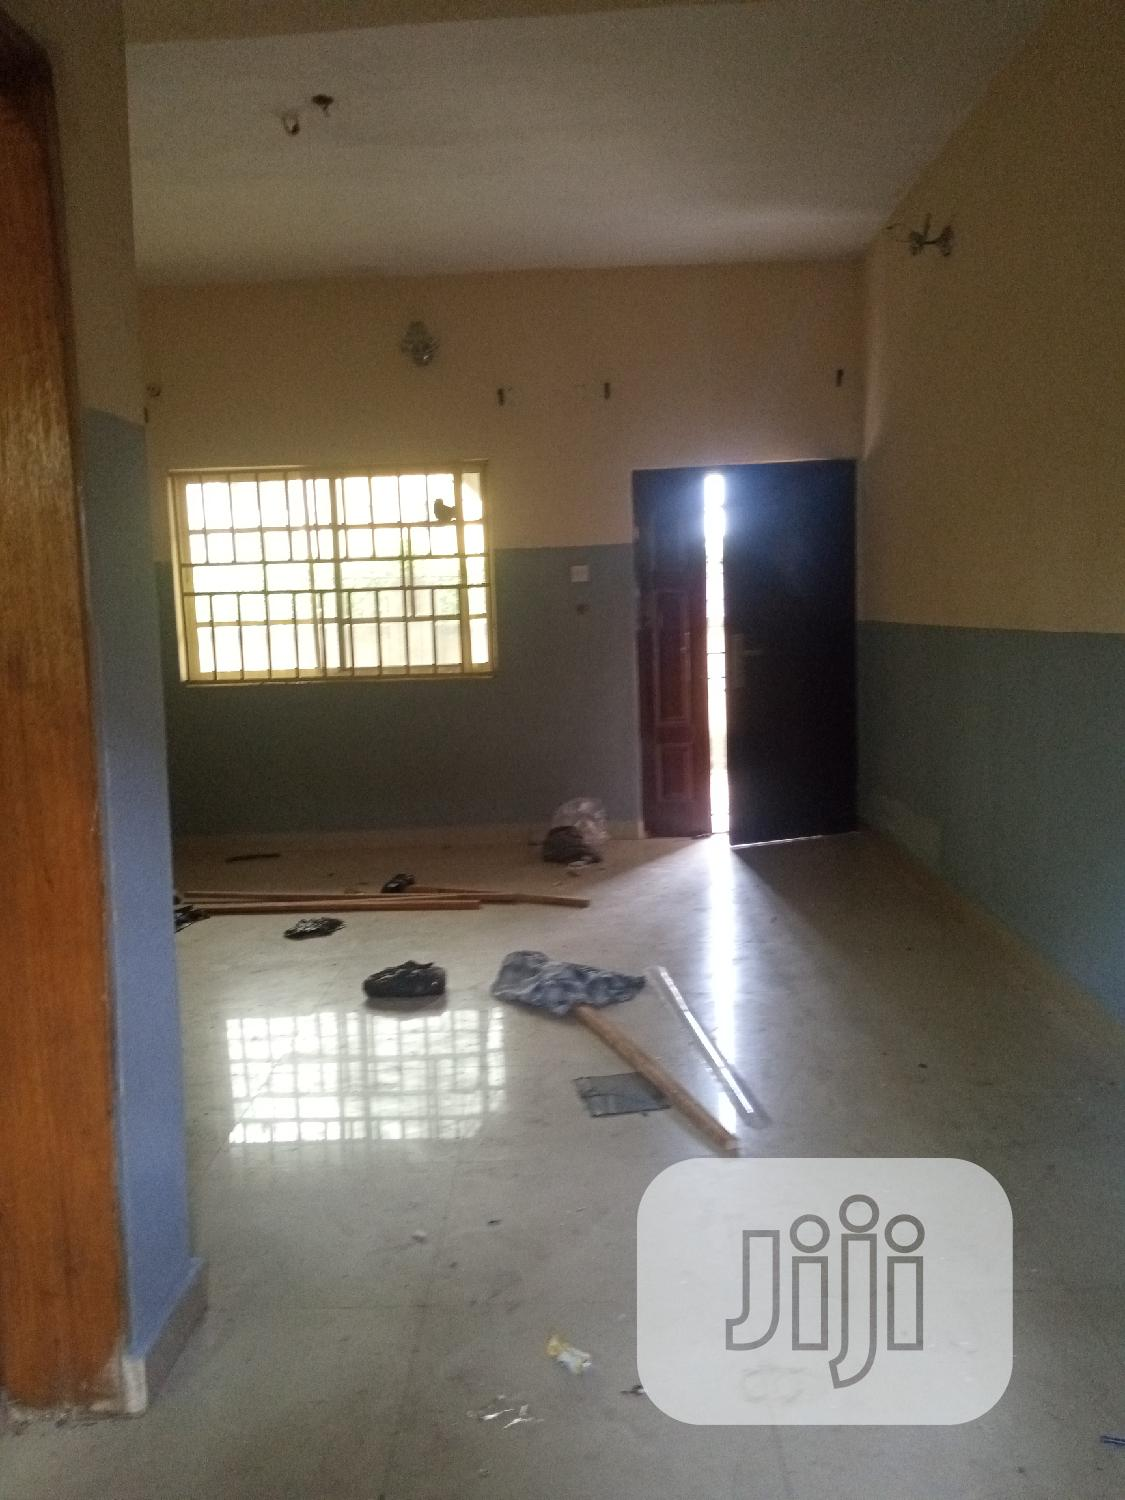 A Neat 3bedroom Flat For Rent In Umuahia | Houses & Apartments For Rent for sale in Umuahia, Abia State, Nigeria